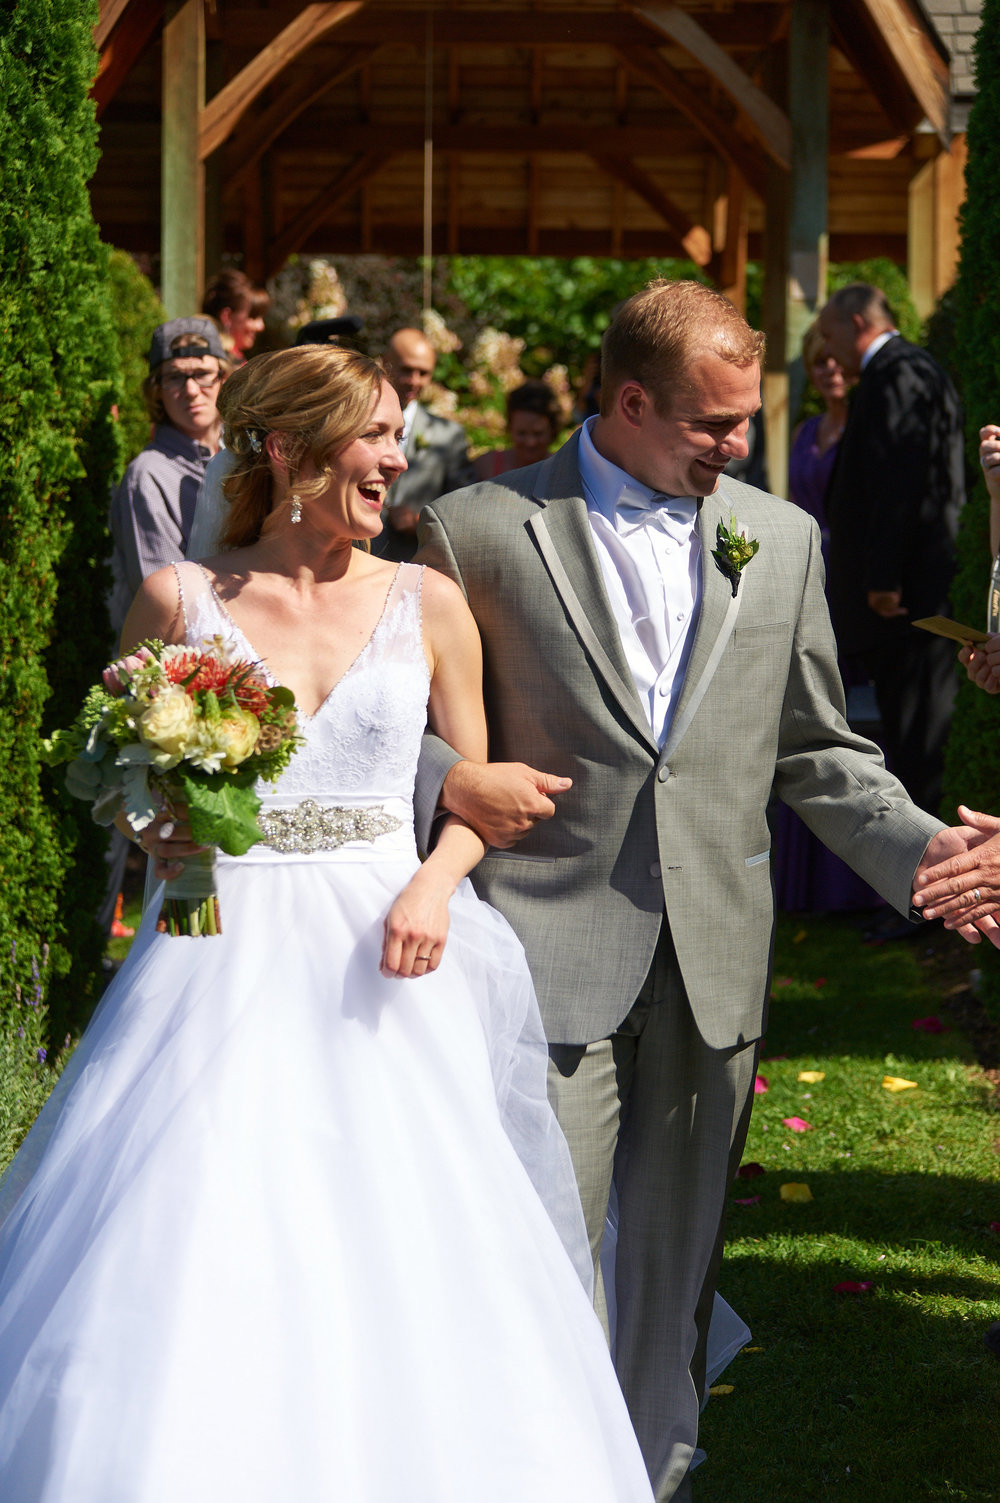 Back down the aisle, this time as husband and wife